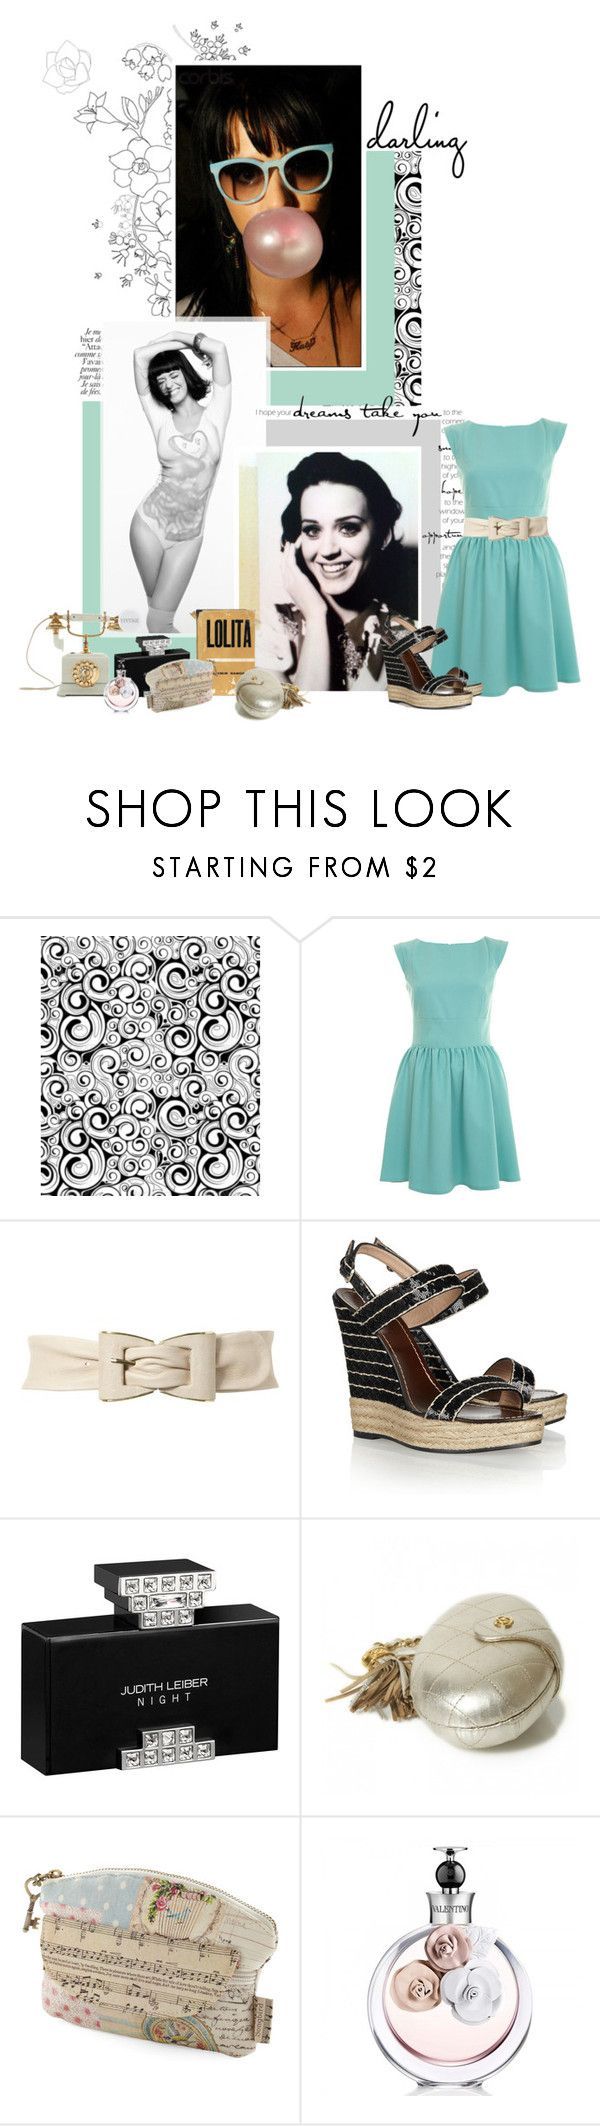 """""""Oh boy, tell me your fantasy, tonight Im dressing up for you"""" by tania-l ❤ liked on Polyvore featuring Miss Selfridge, Jane Norman, Valentino, Leiber, Chanel, Disaster Designs, valentino wedges and katy perry"""